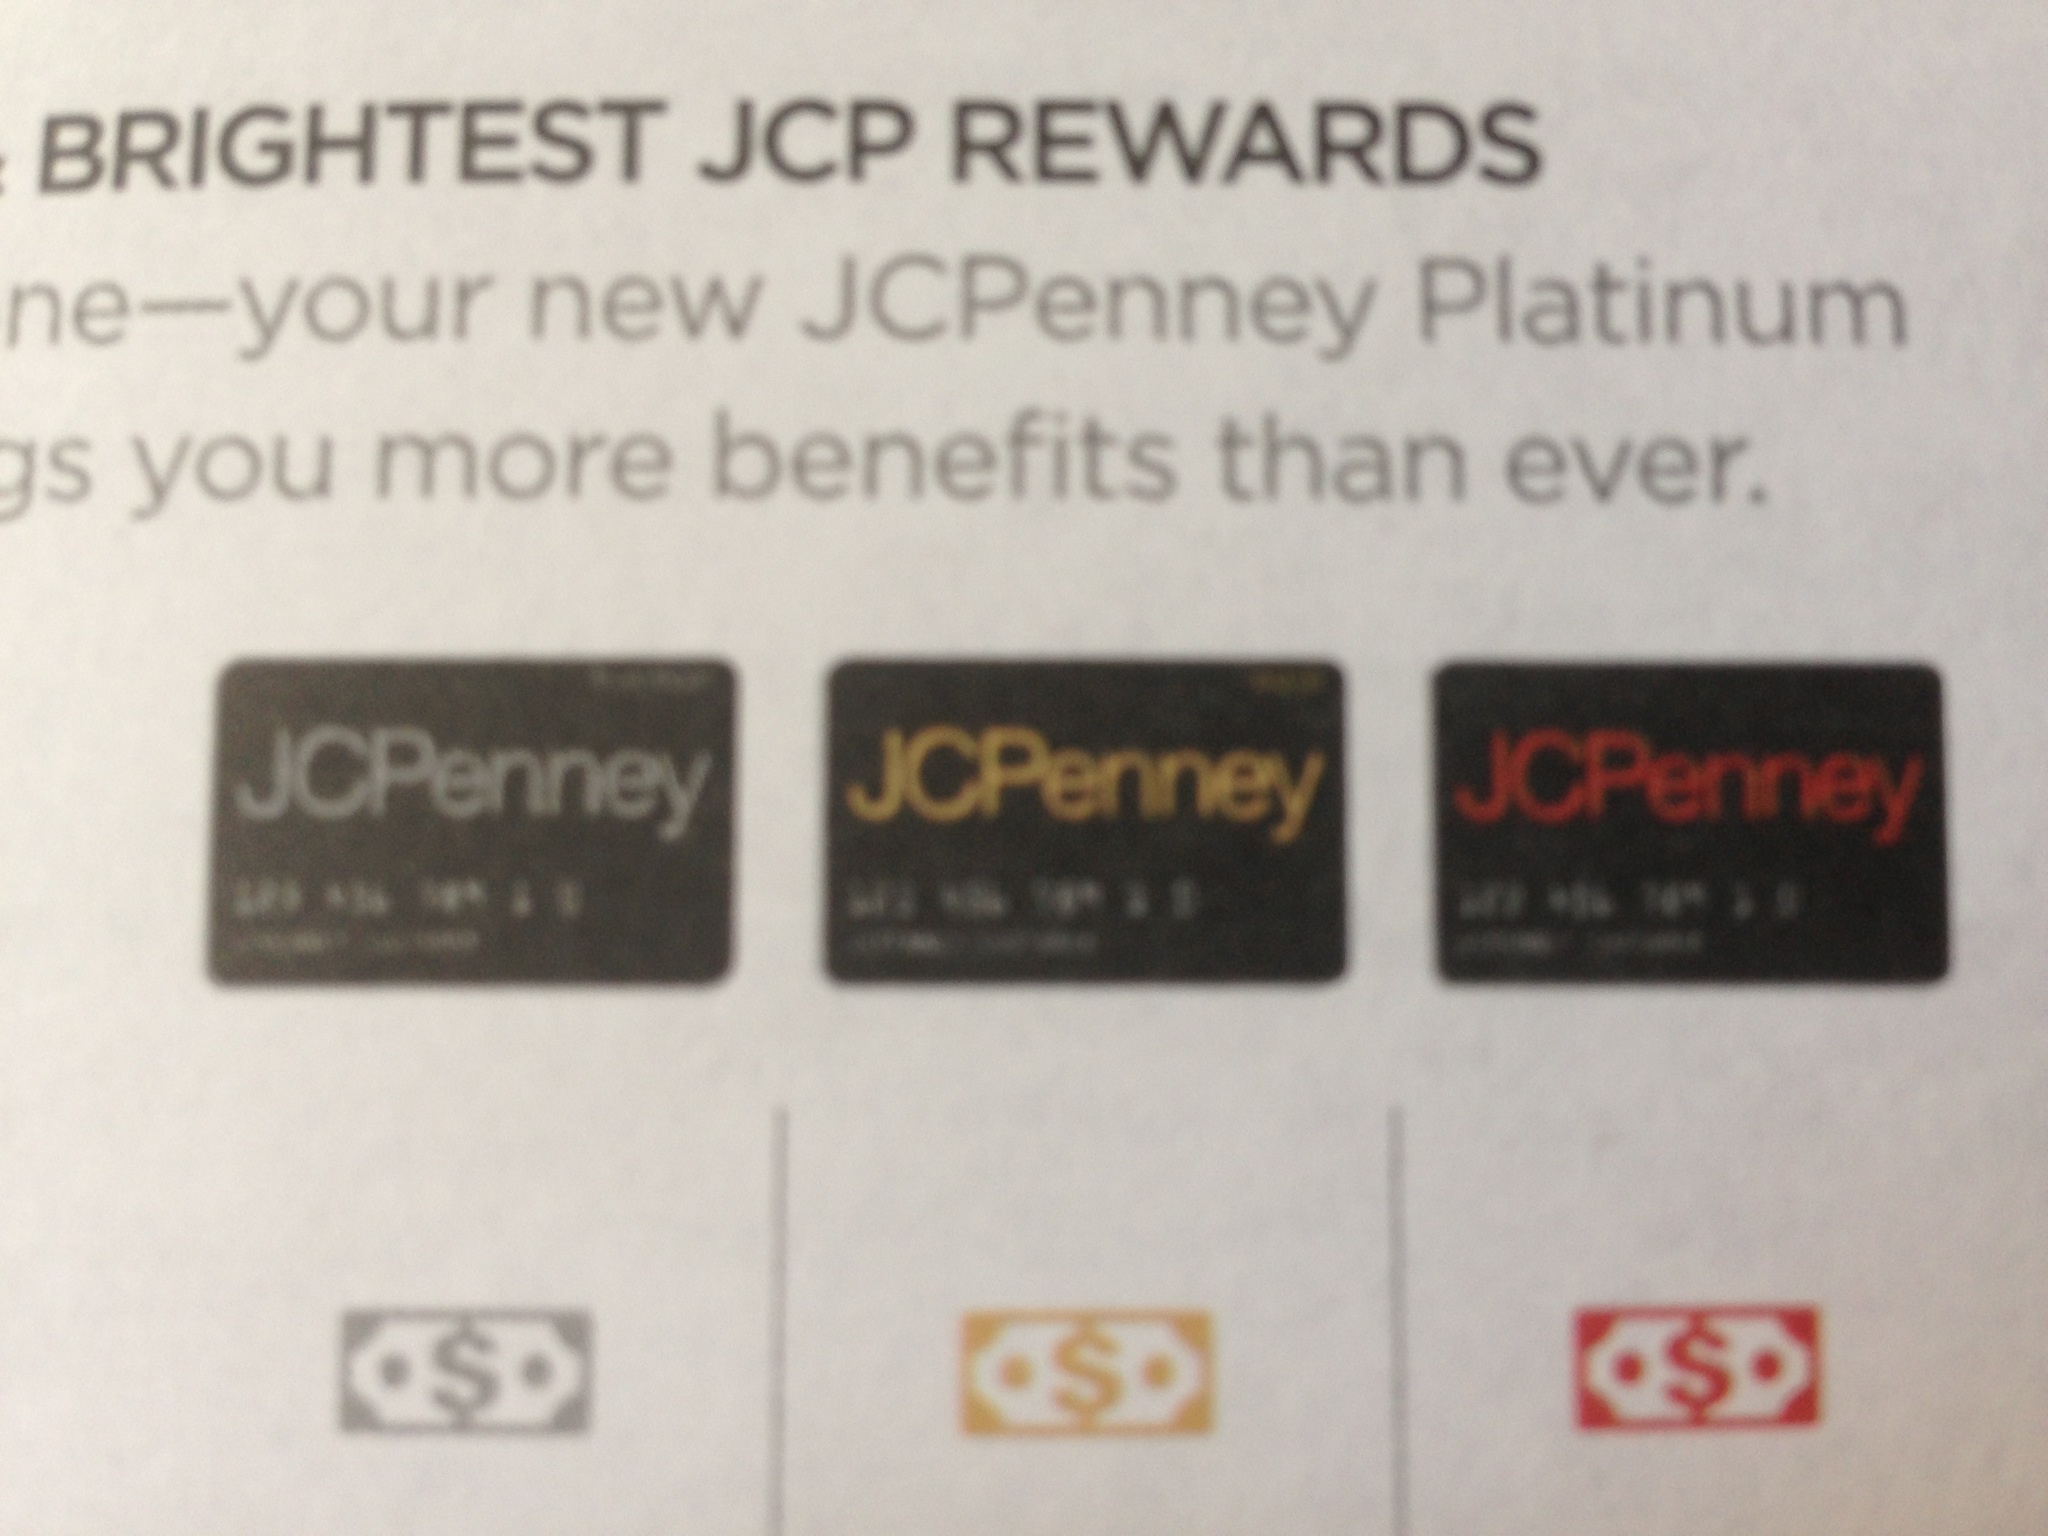 Jcp Rolling Out New Cards Myfico Forums 2443595